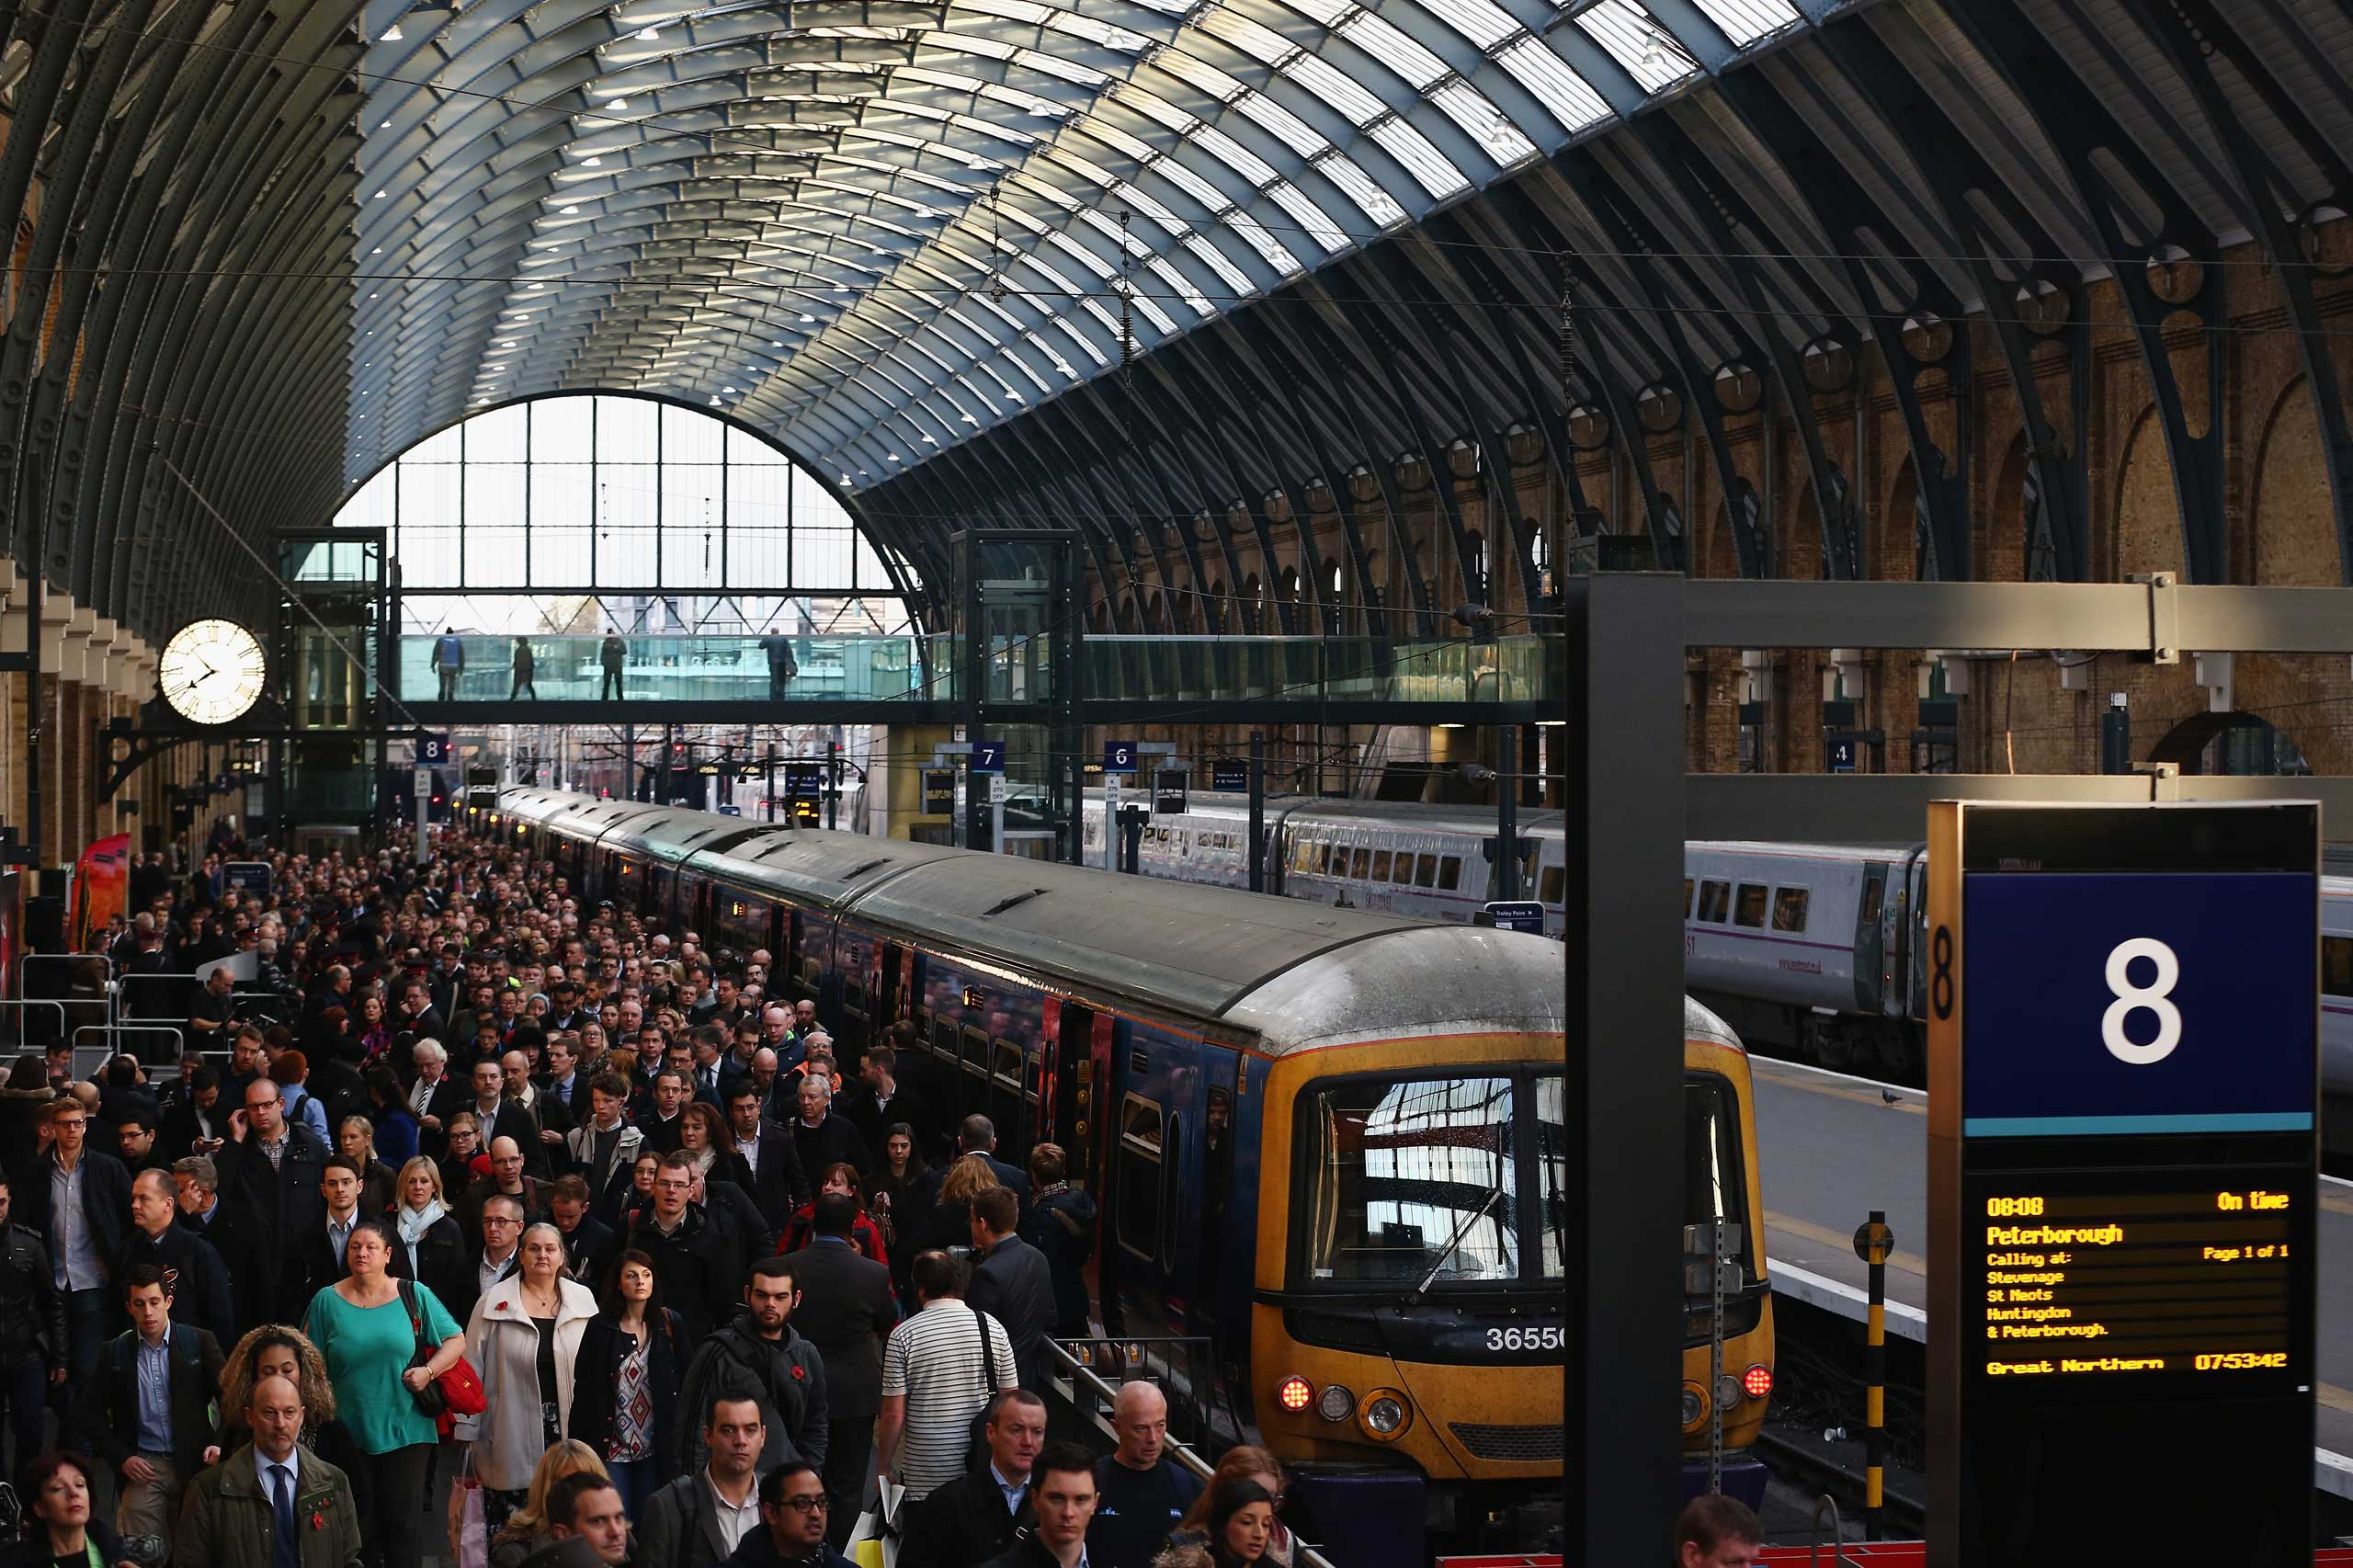 Passengers disembark a train at King's Cross station in London.